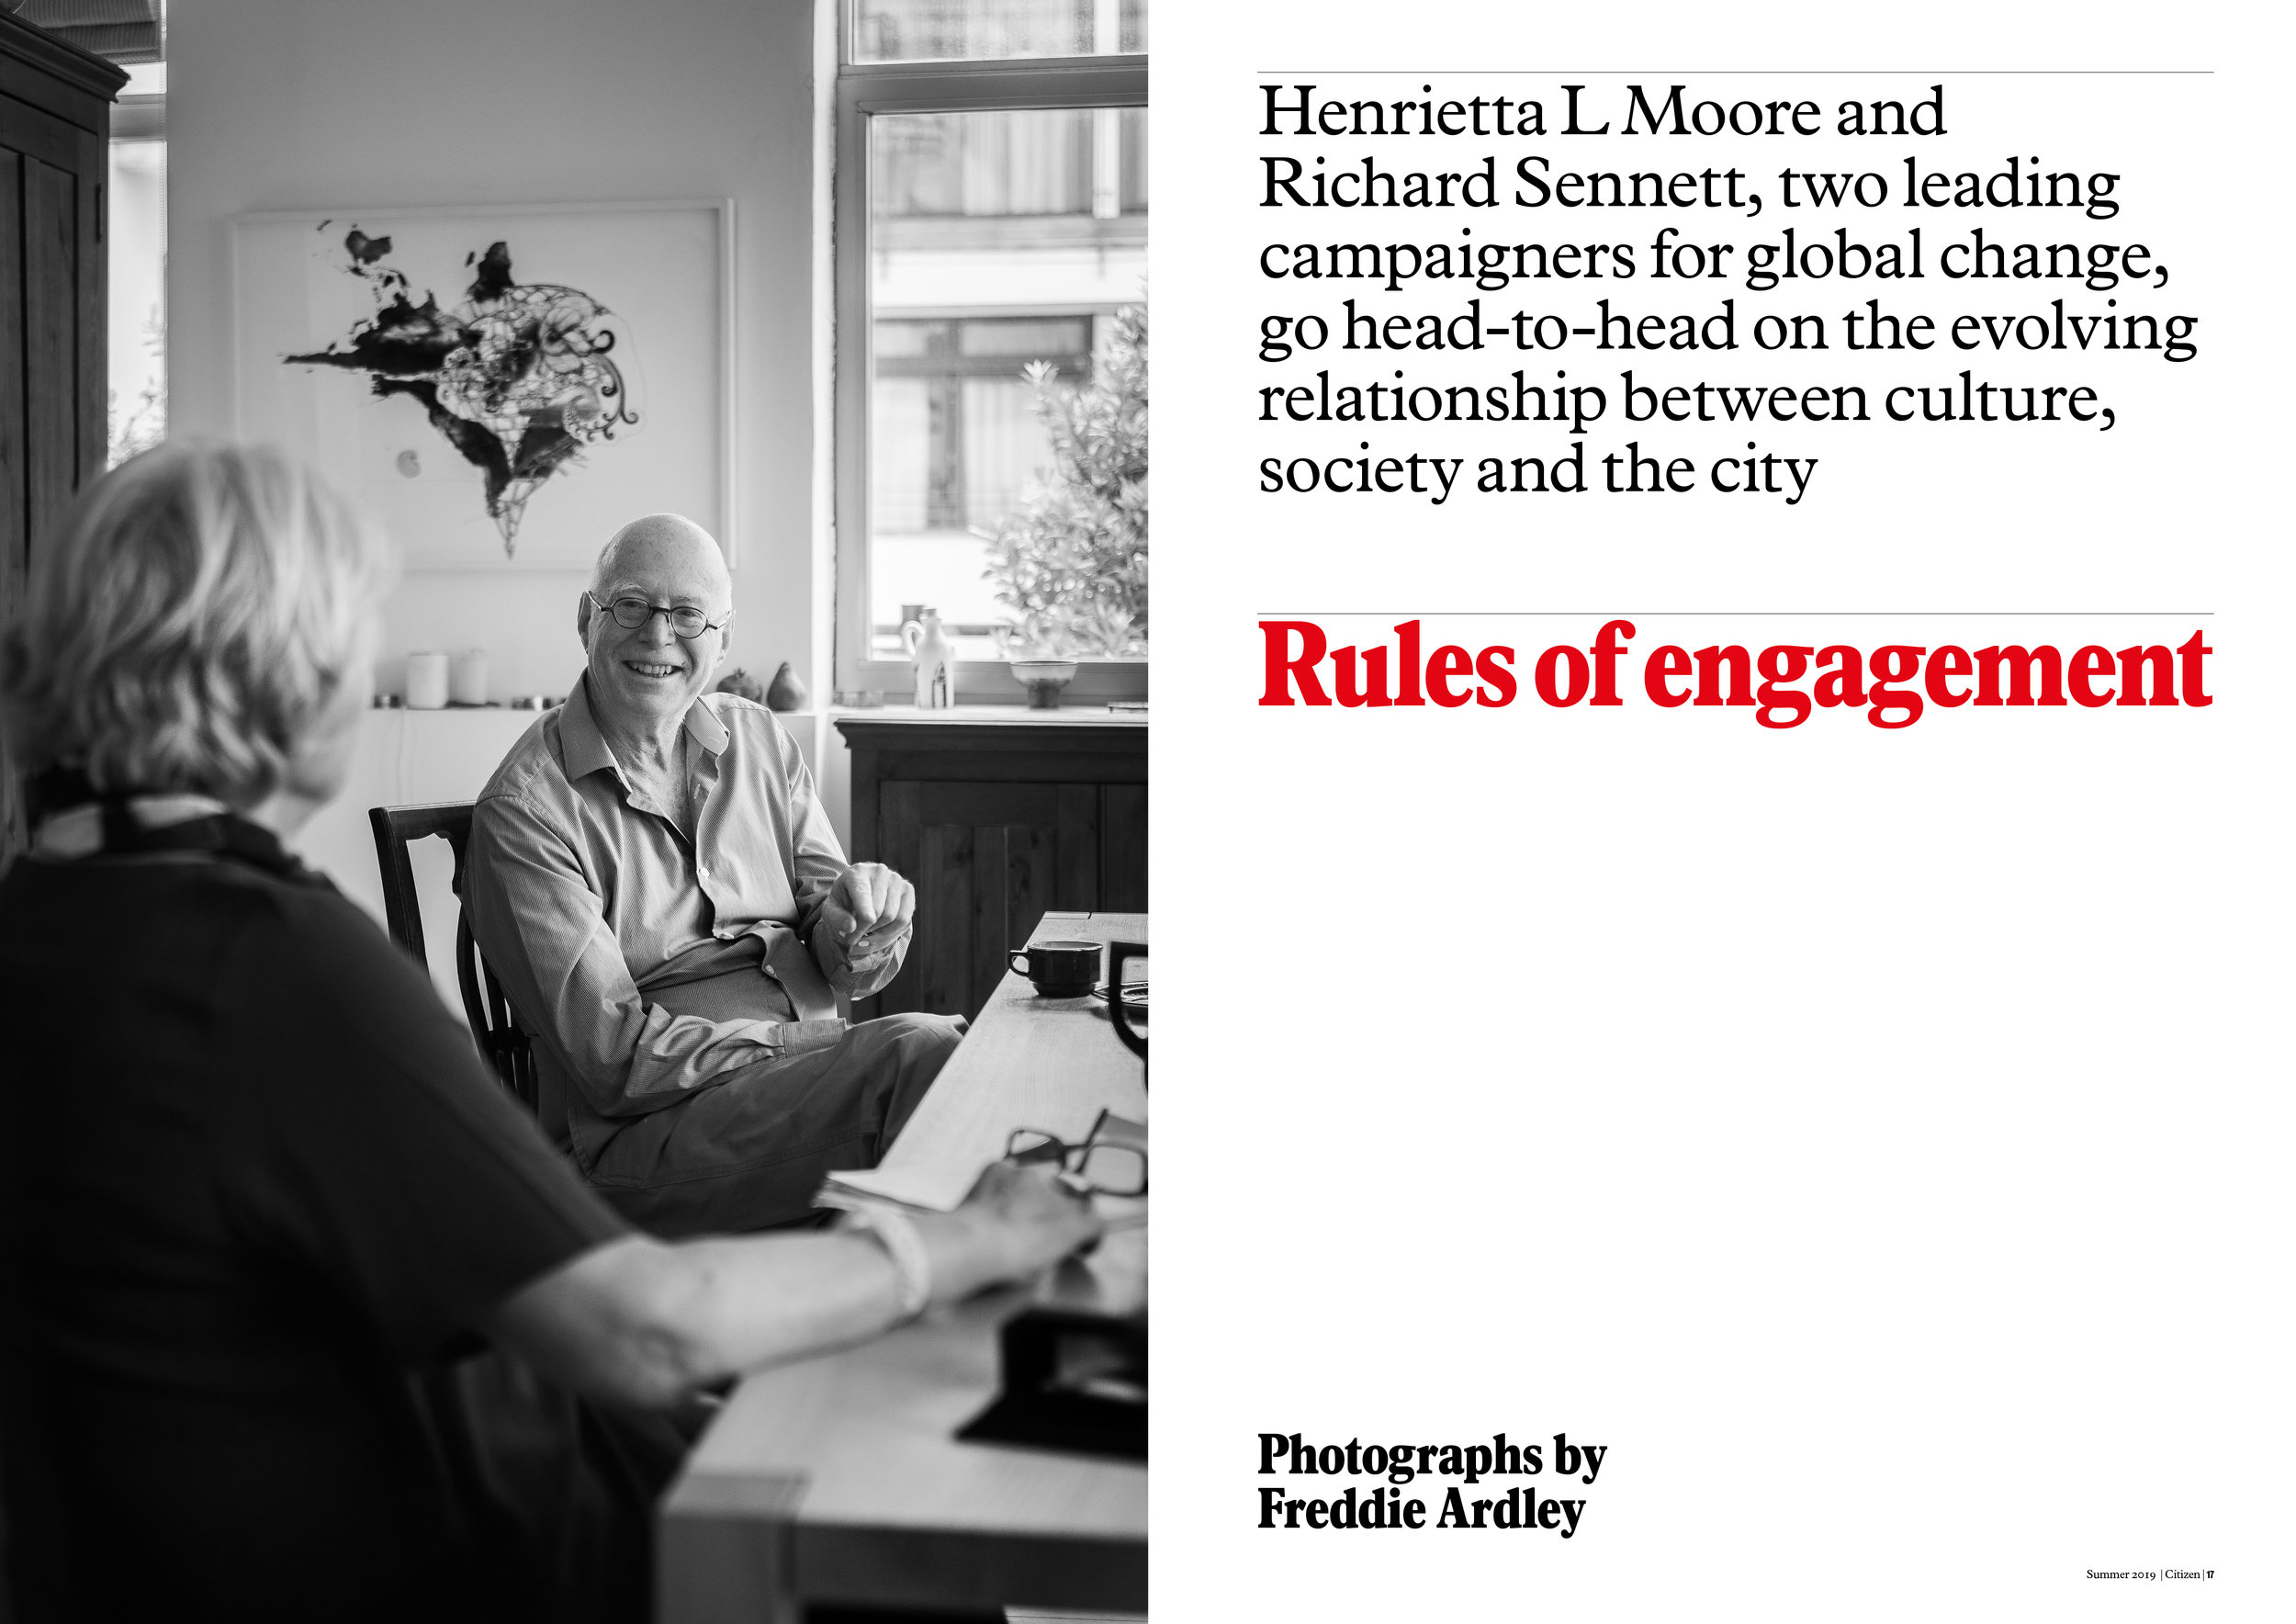 Rules of Engagement article: Richard Sennett & Dame Henrietta Moore. Photograph by Freddie Ardley.